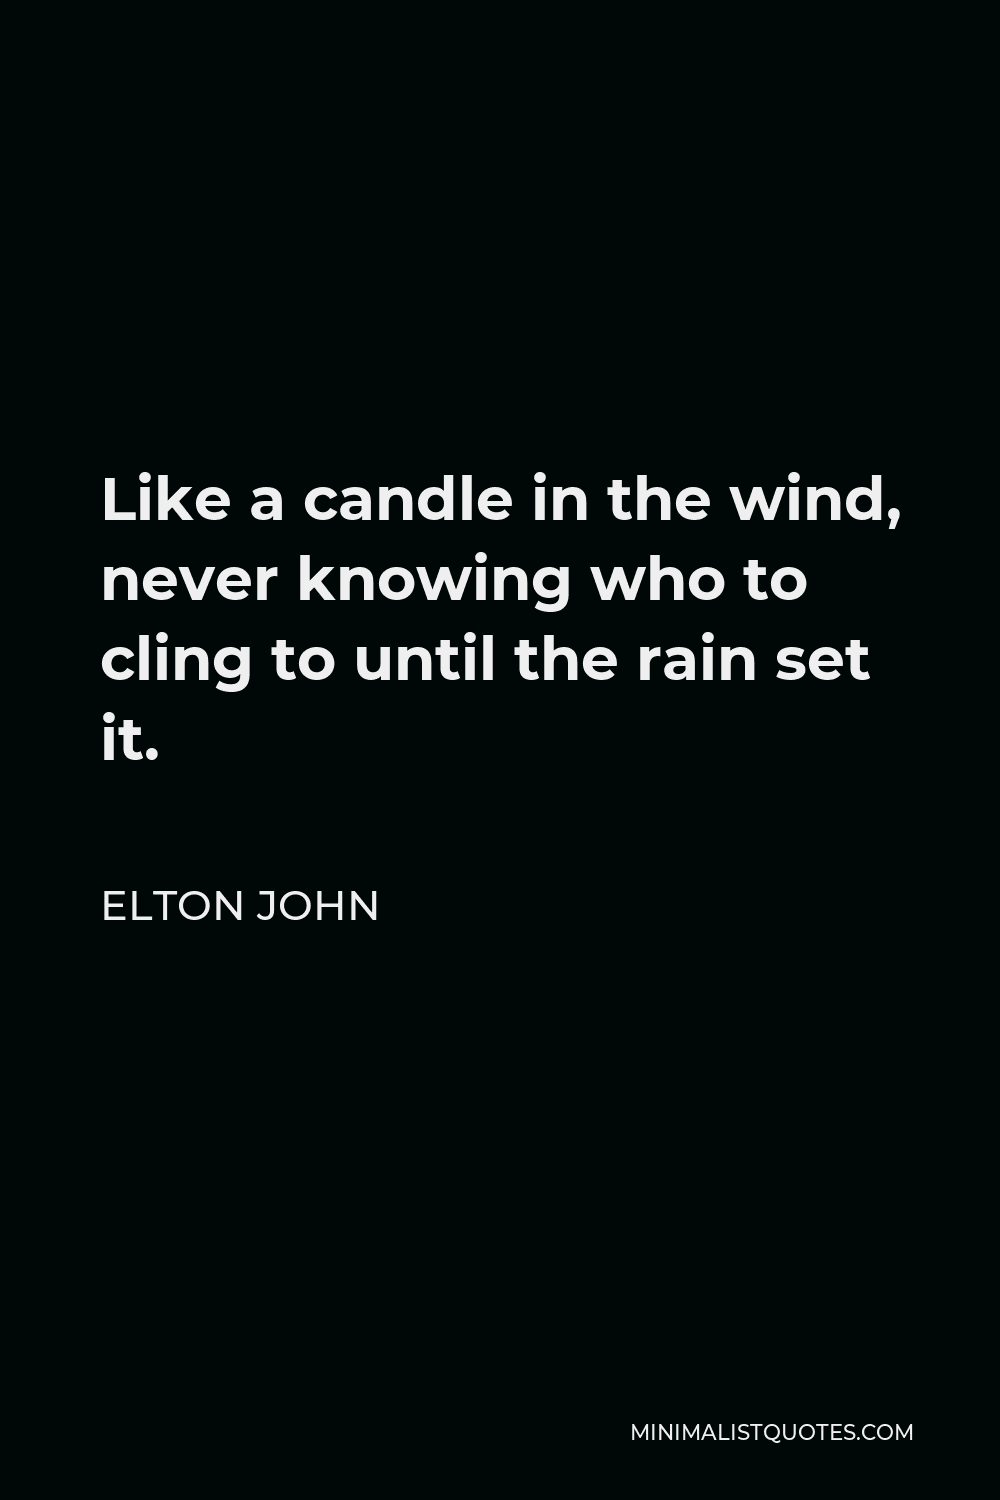 Elton John Quote - Like a candle in the wind, never knowing who to cling to until the rain set it.